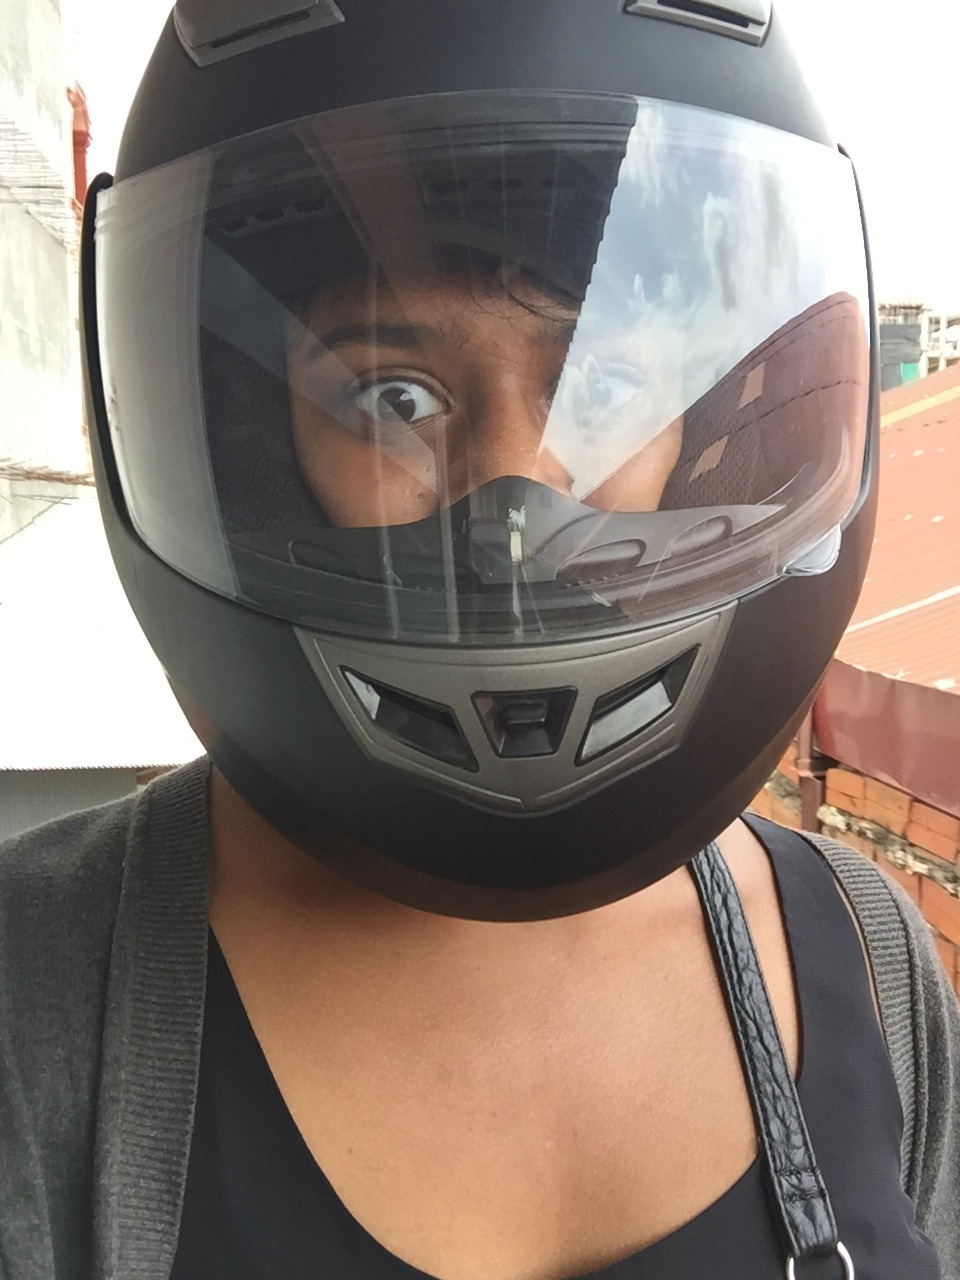 Safety first! Varsha models her motorcycle helmet.